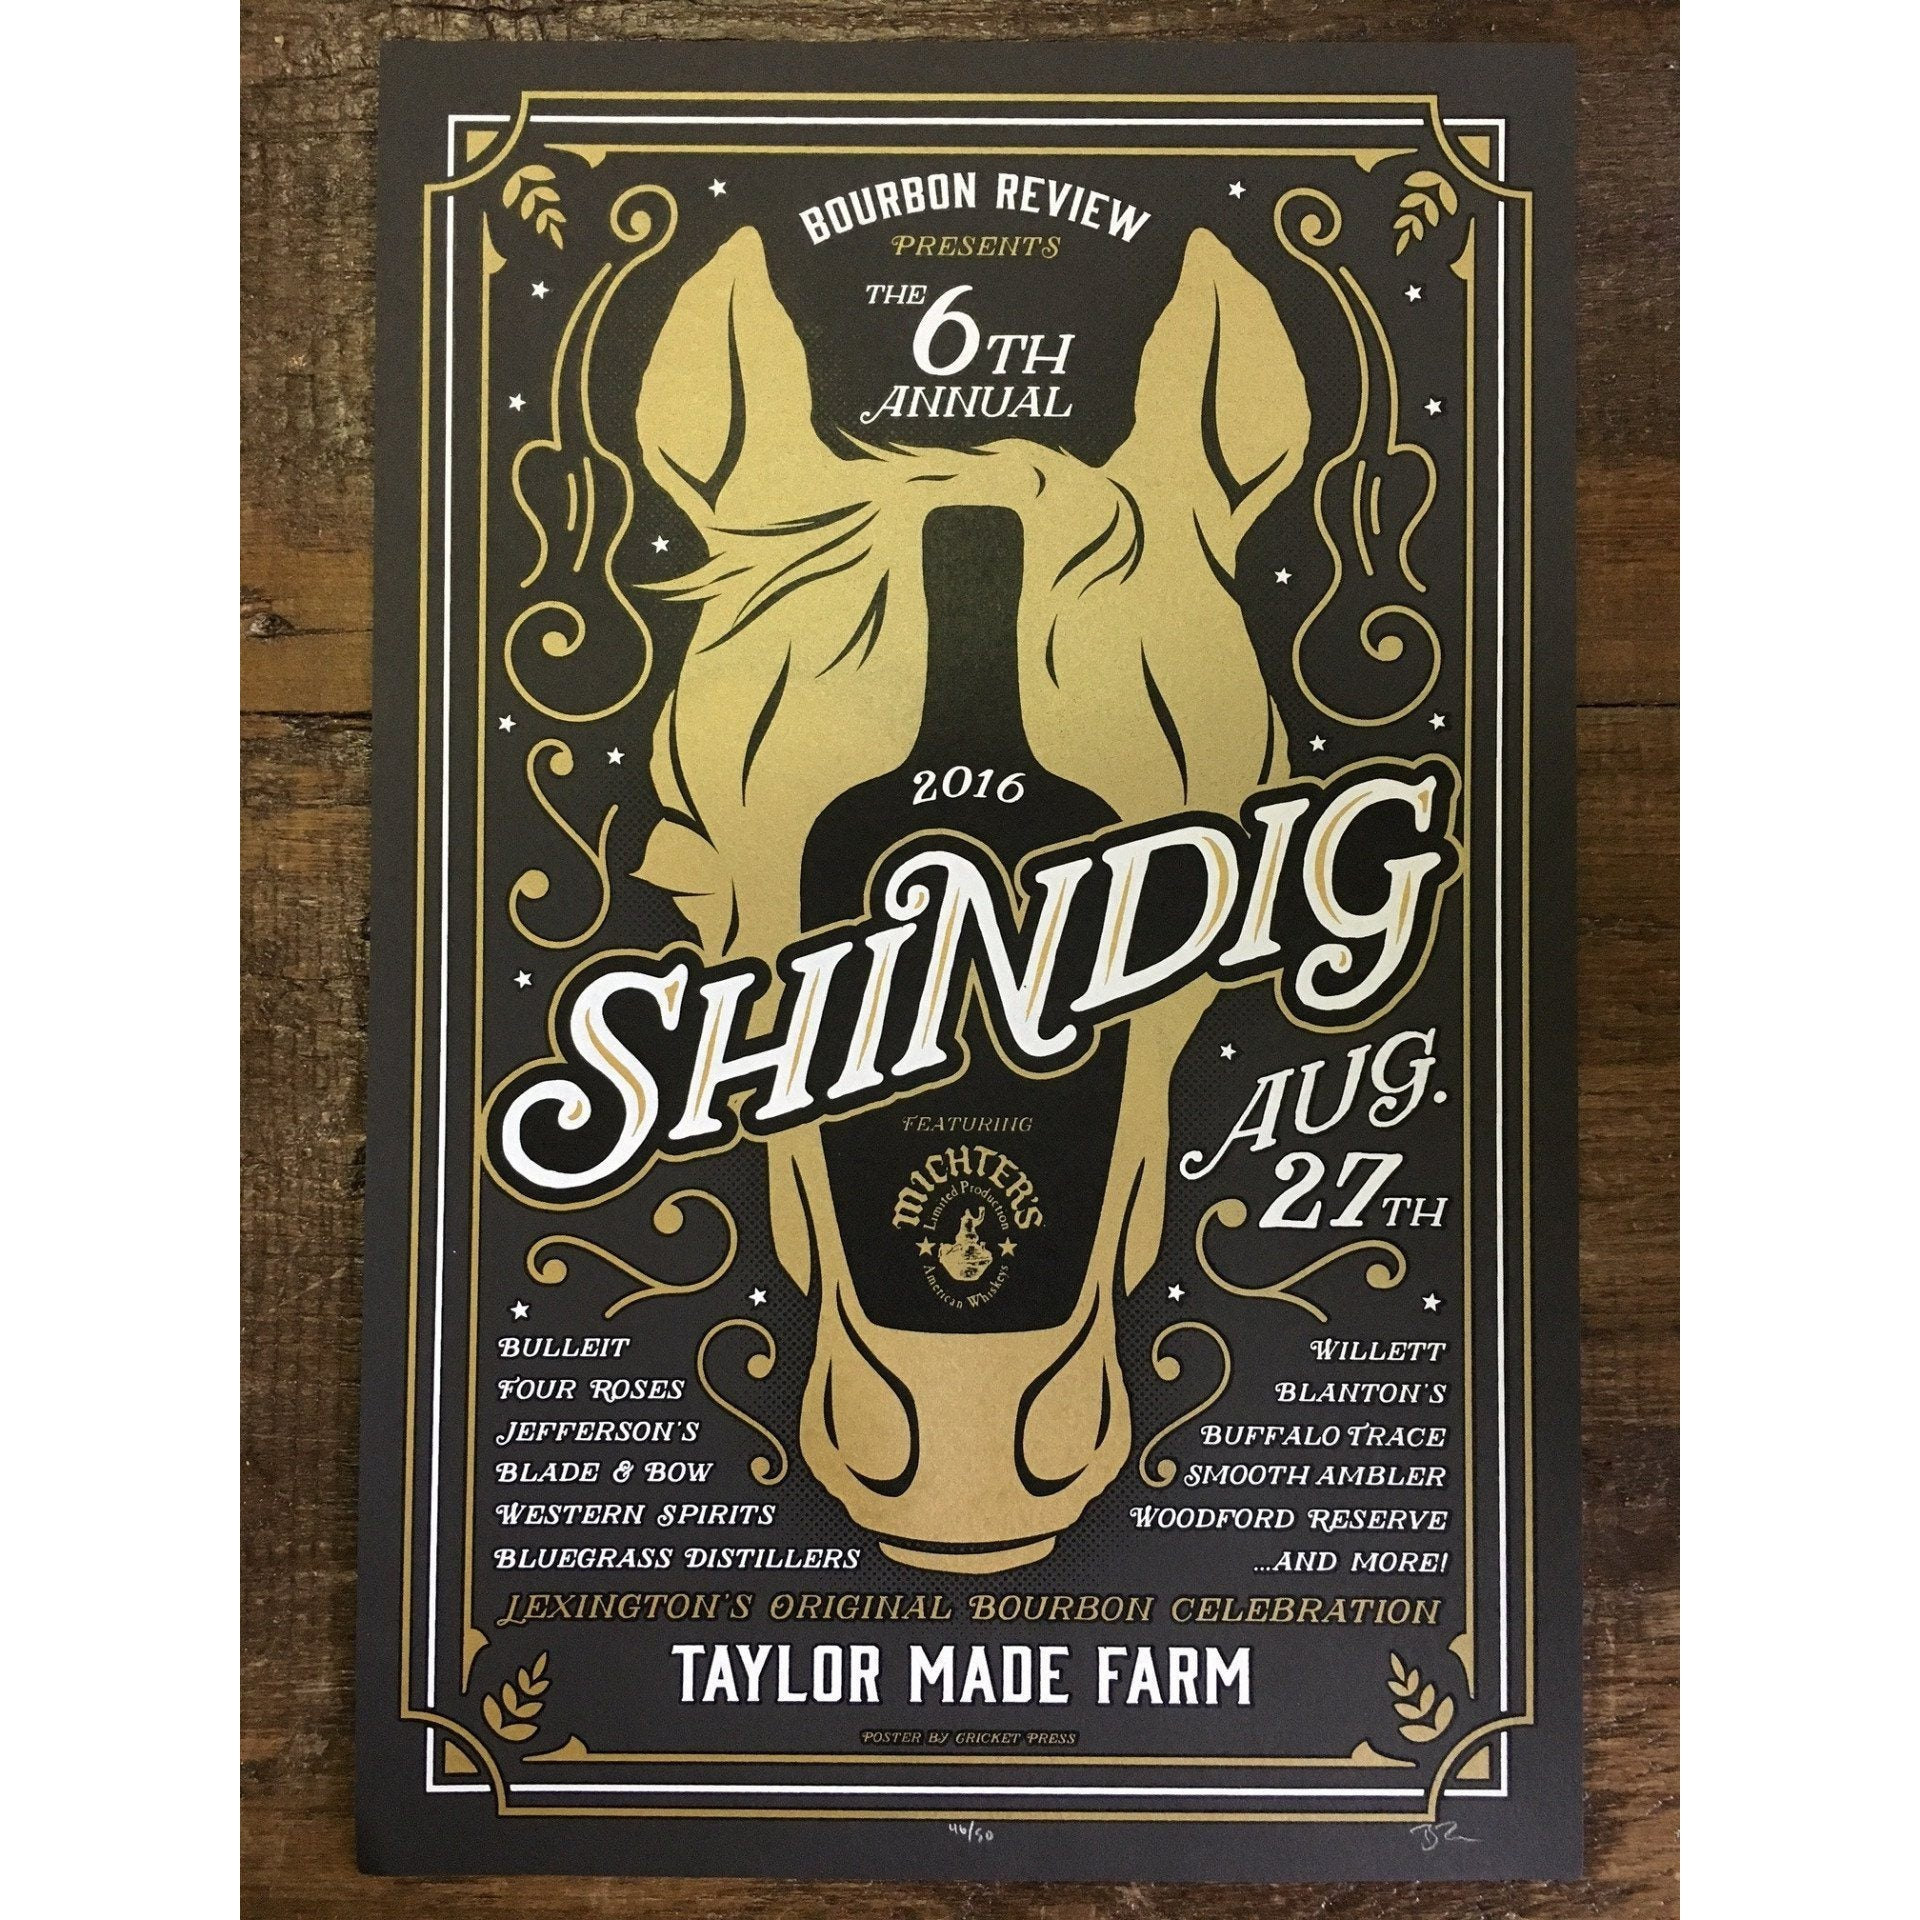 Bourbon Review Shindig Poster 2016 - Bourbon Outfitter